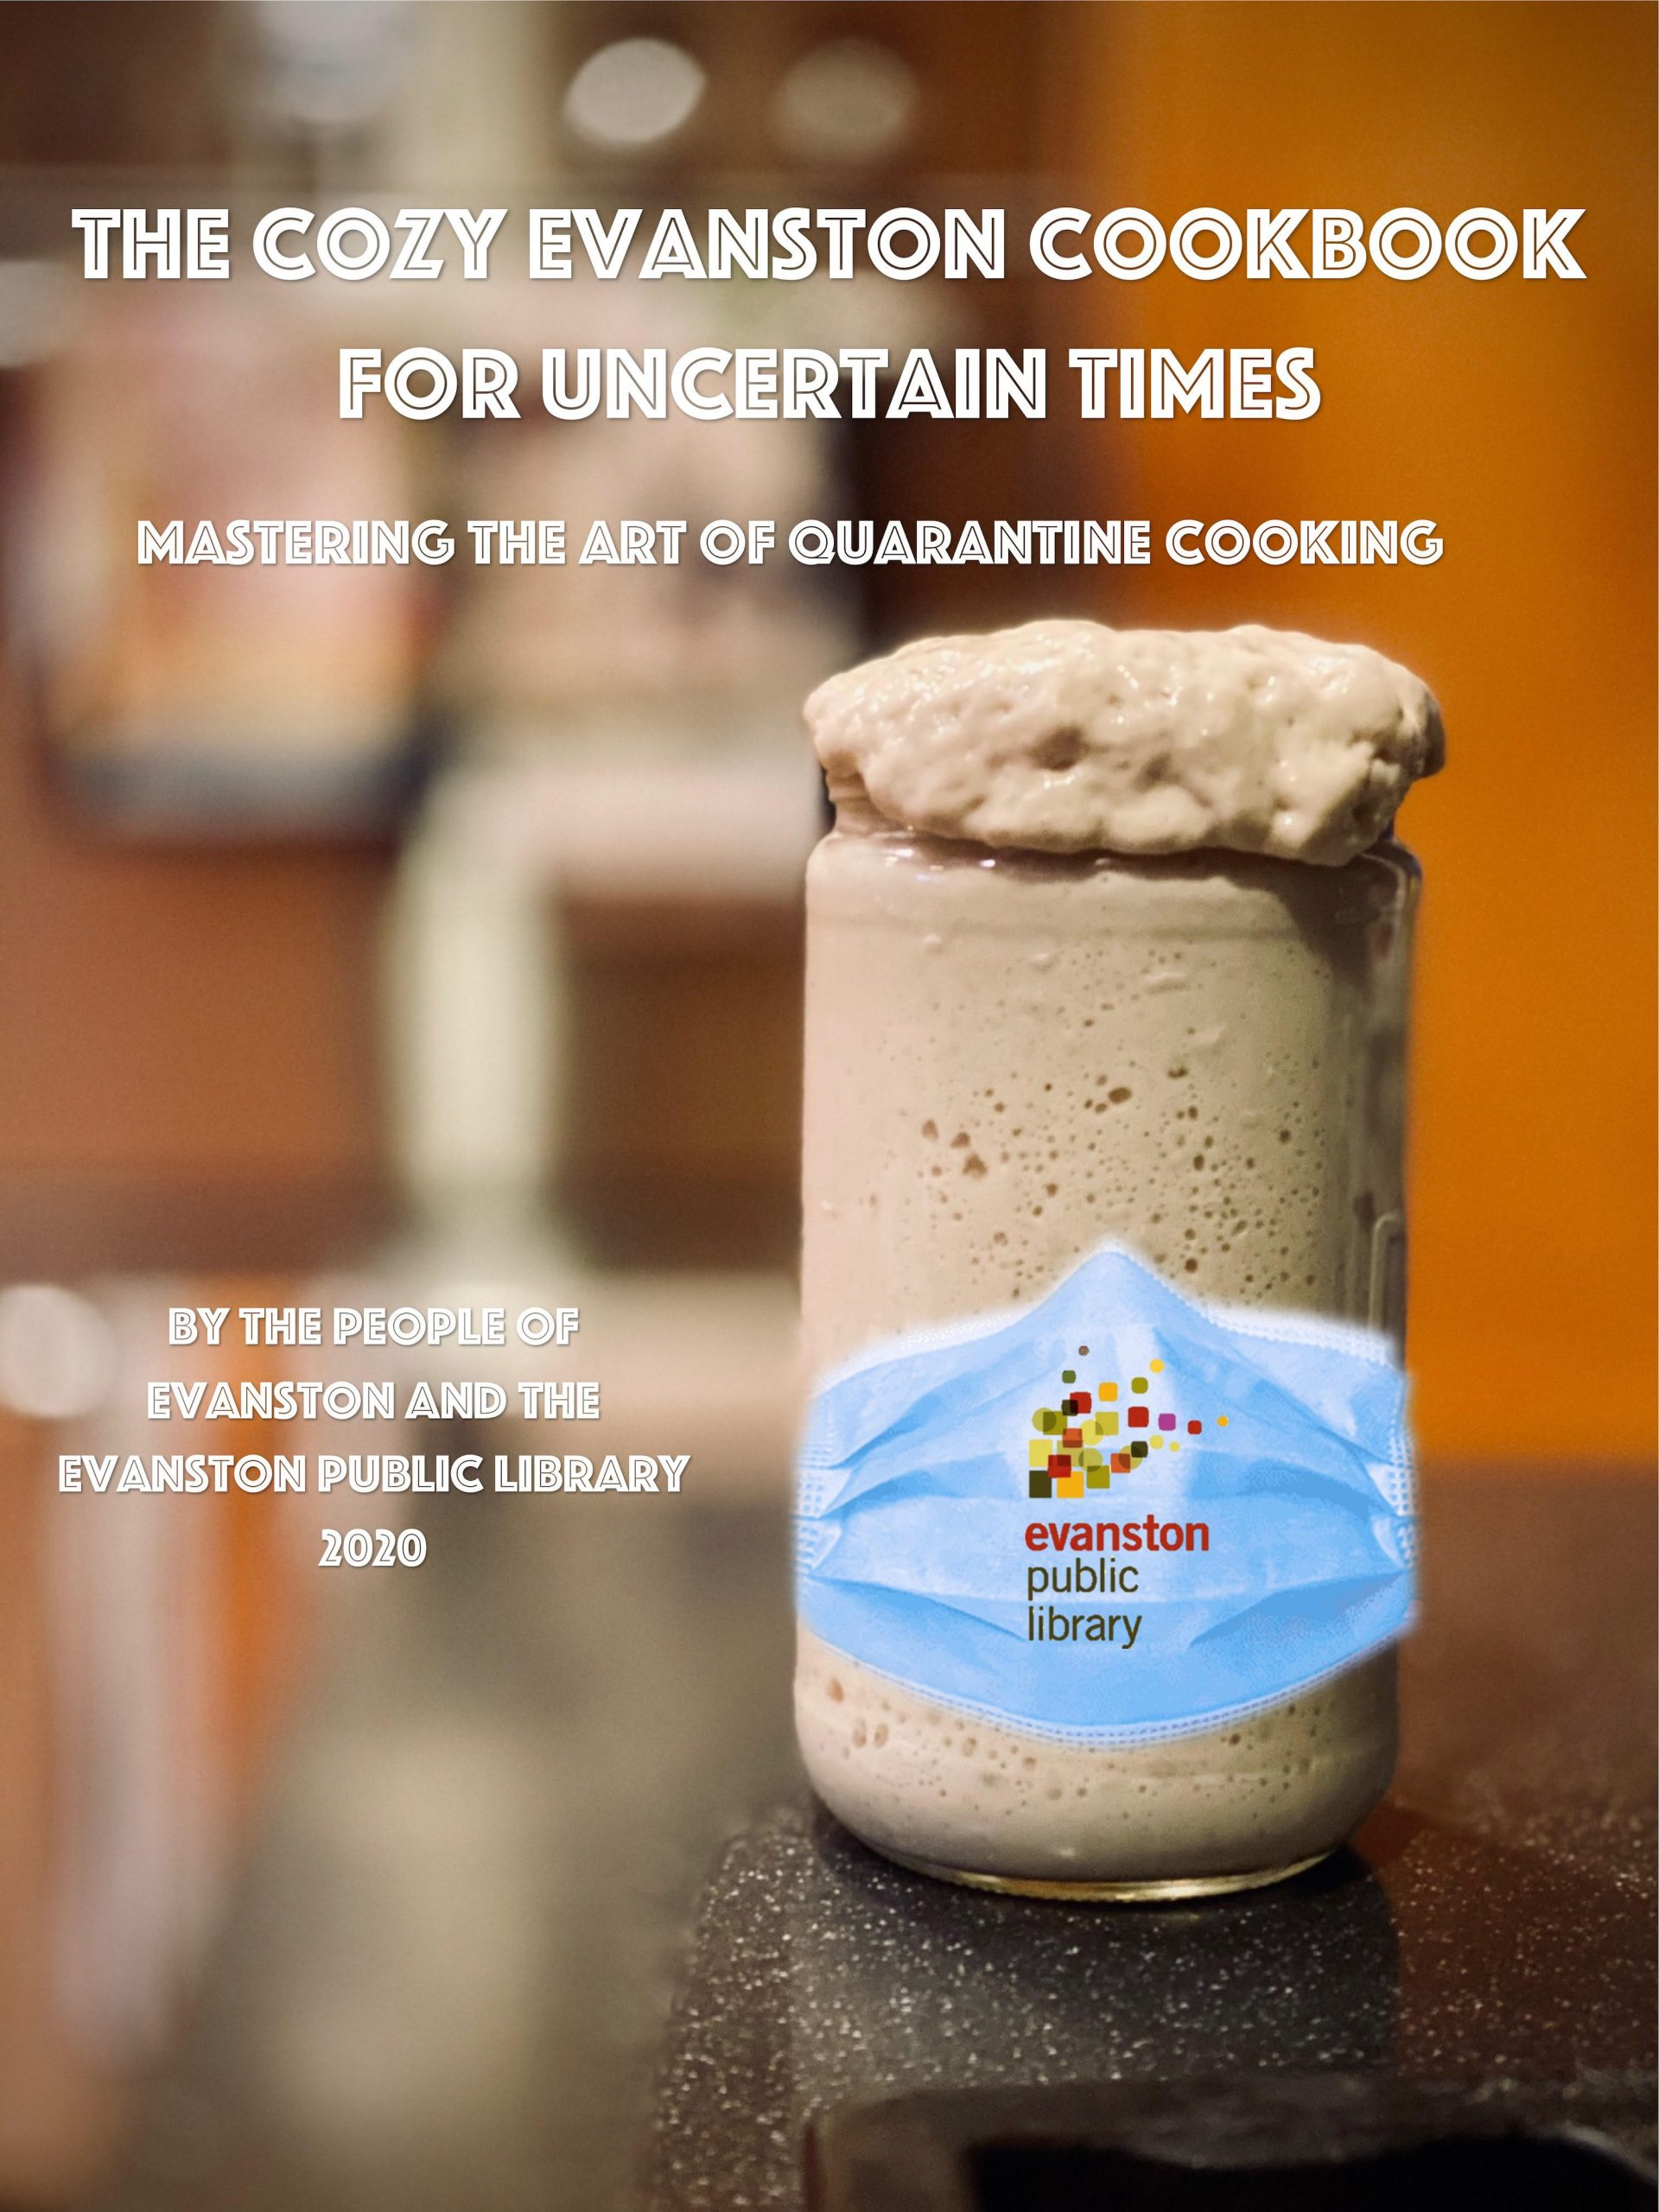 Cover image for The Cozy Evanston Cookbook for Uncertain Times